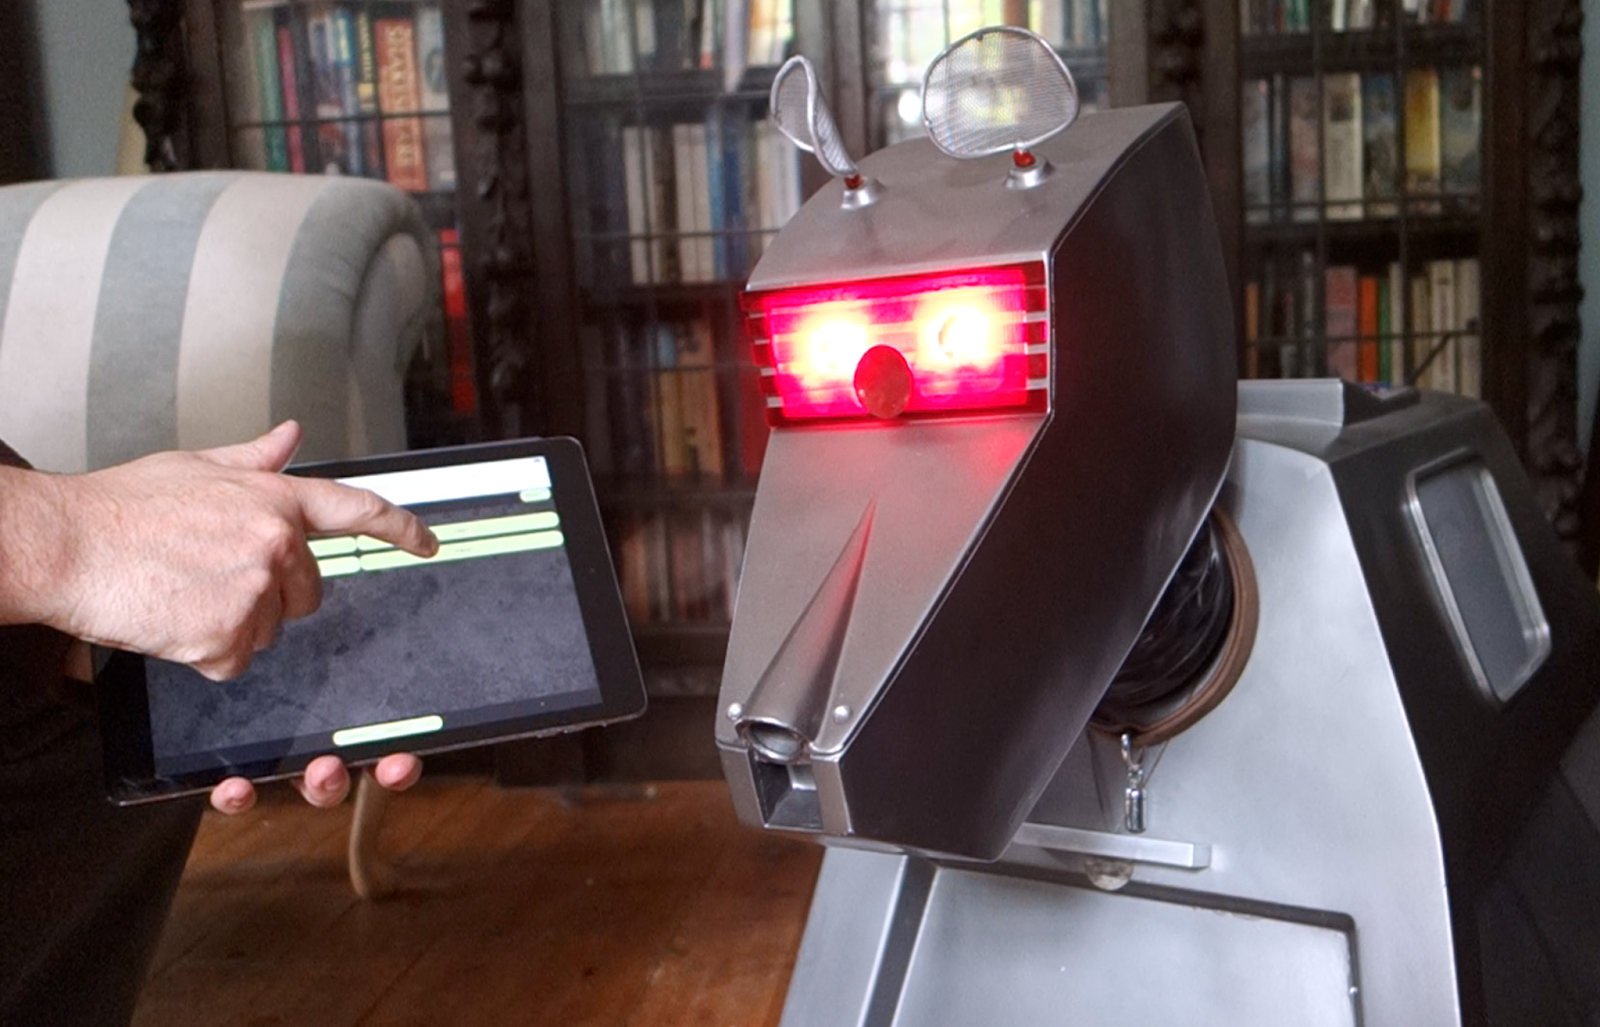 The face of a homemade K-9 robot from Doctor Who